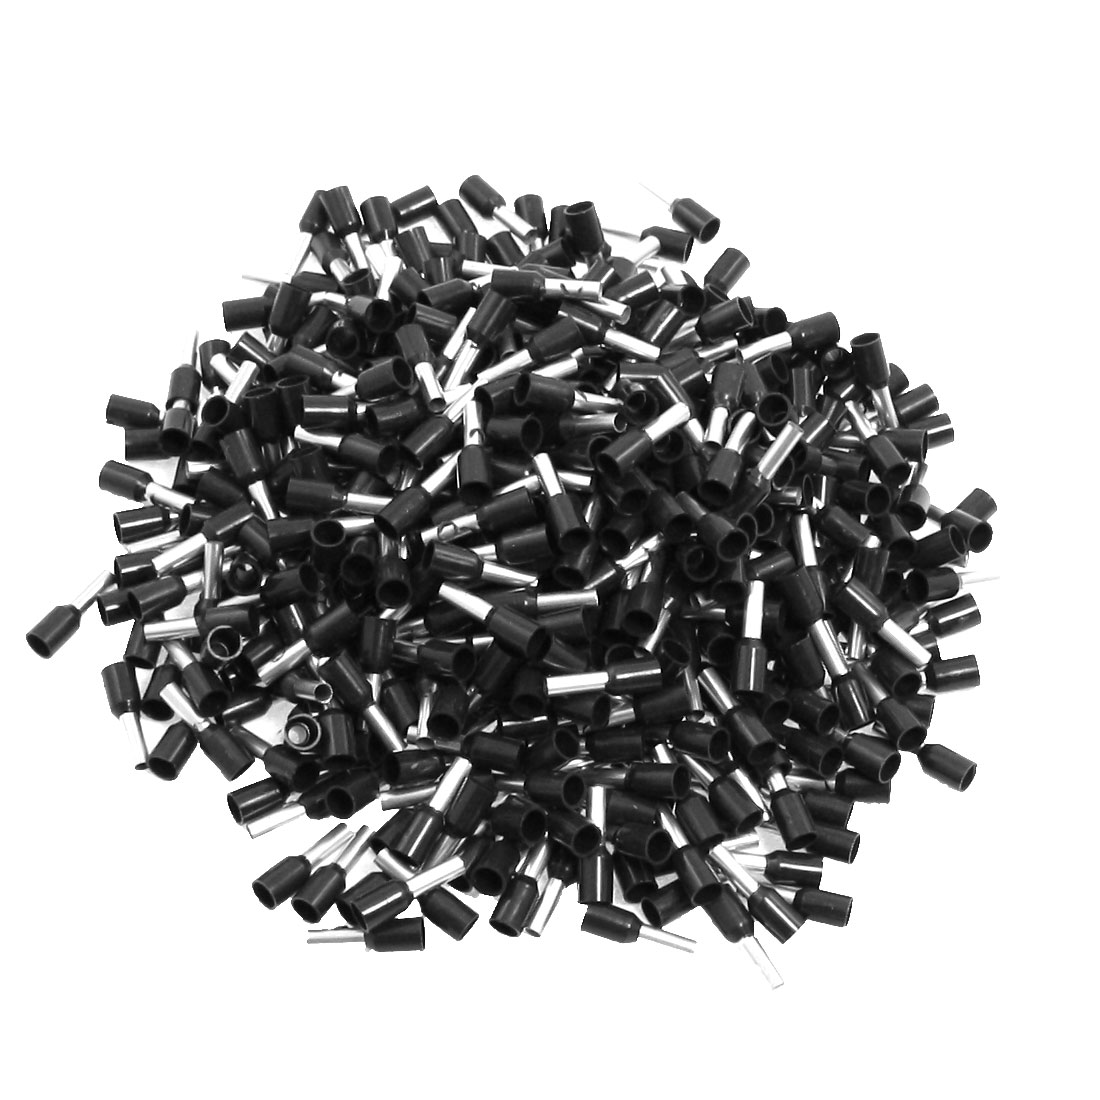 1000 Pcs 4.6mm Dia Tube Pre Insulated Terminals Wire Connector Black